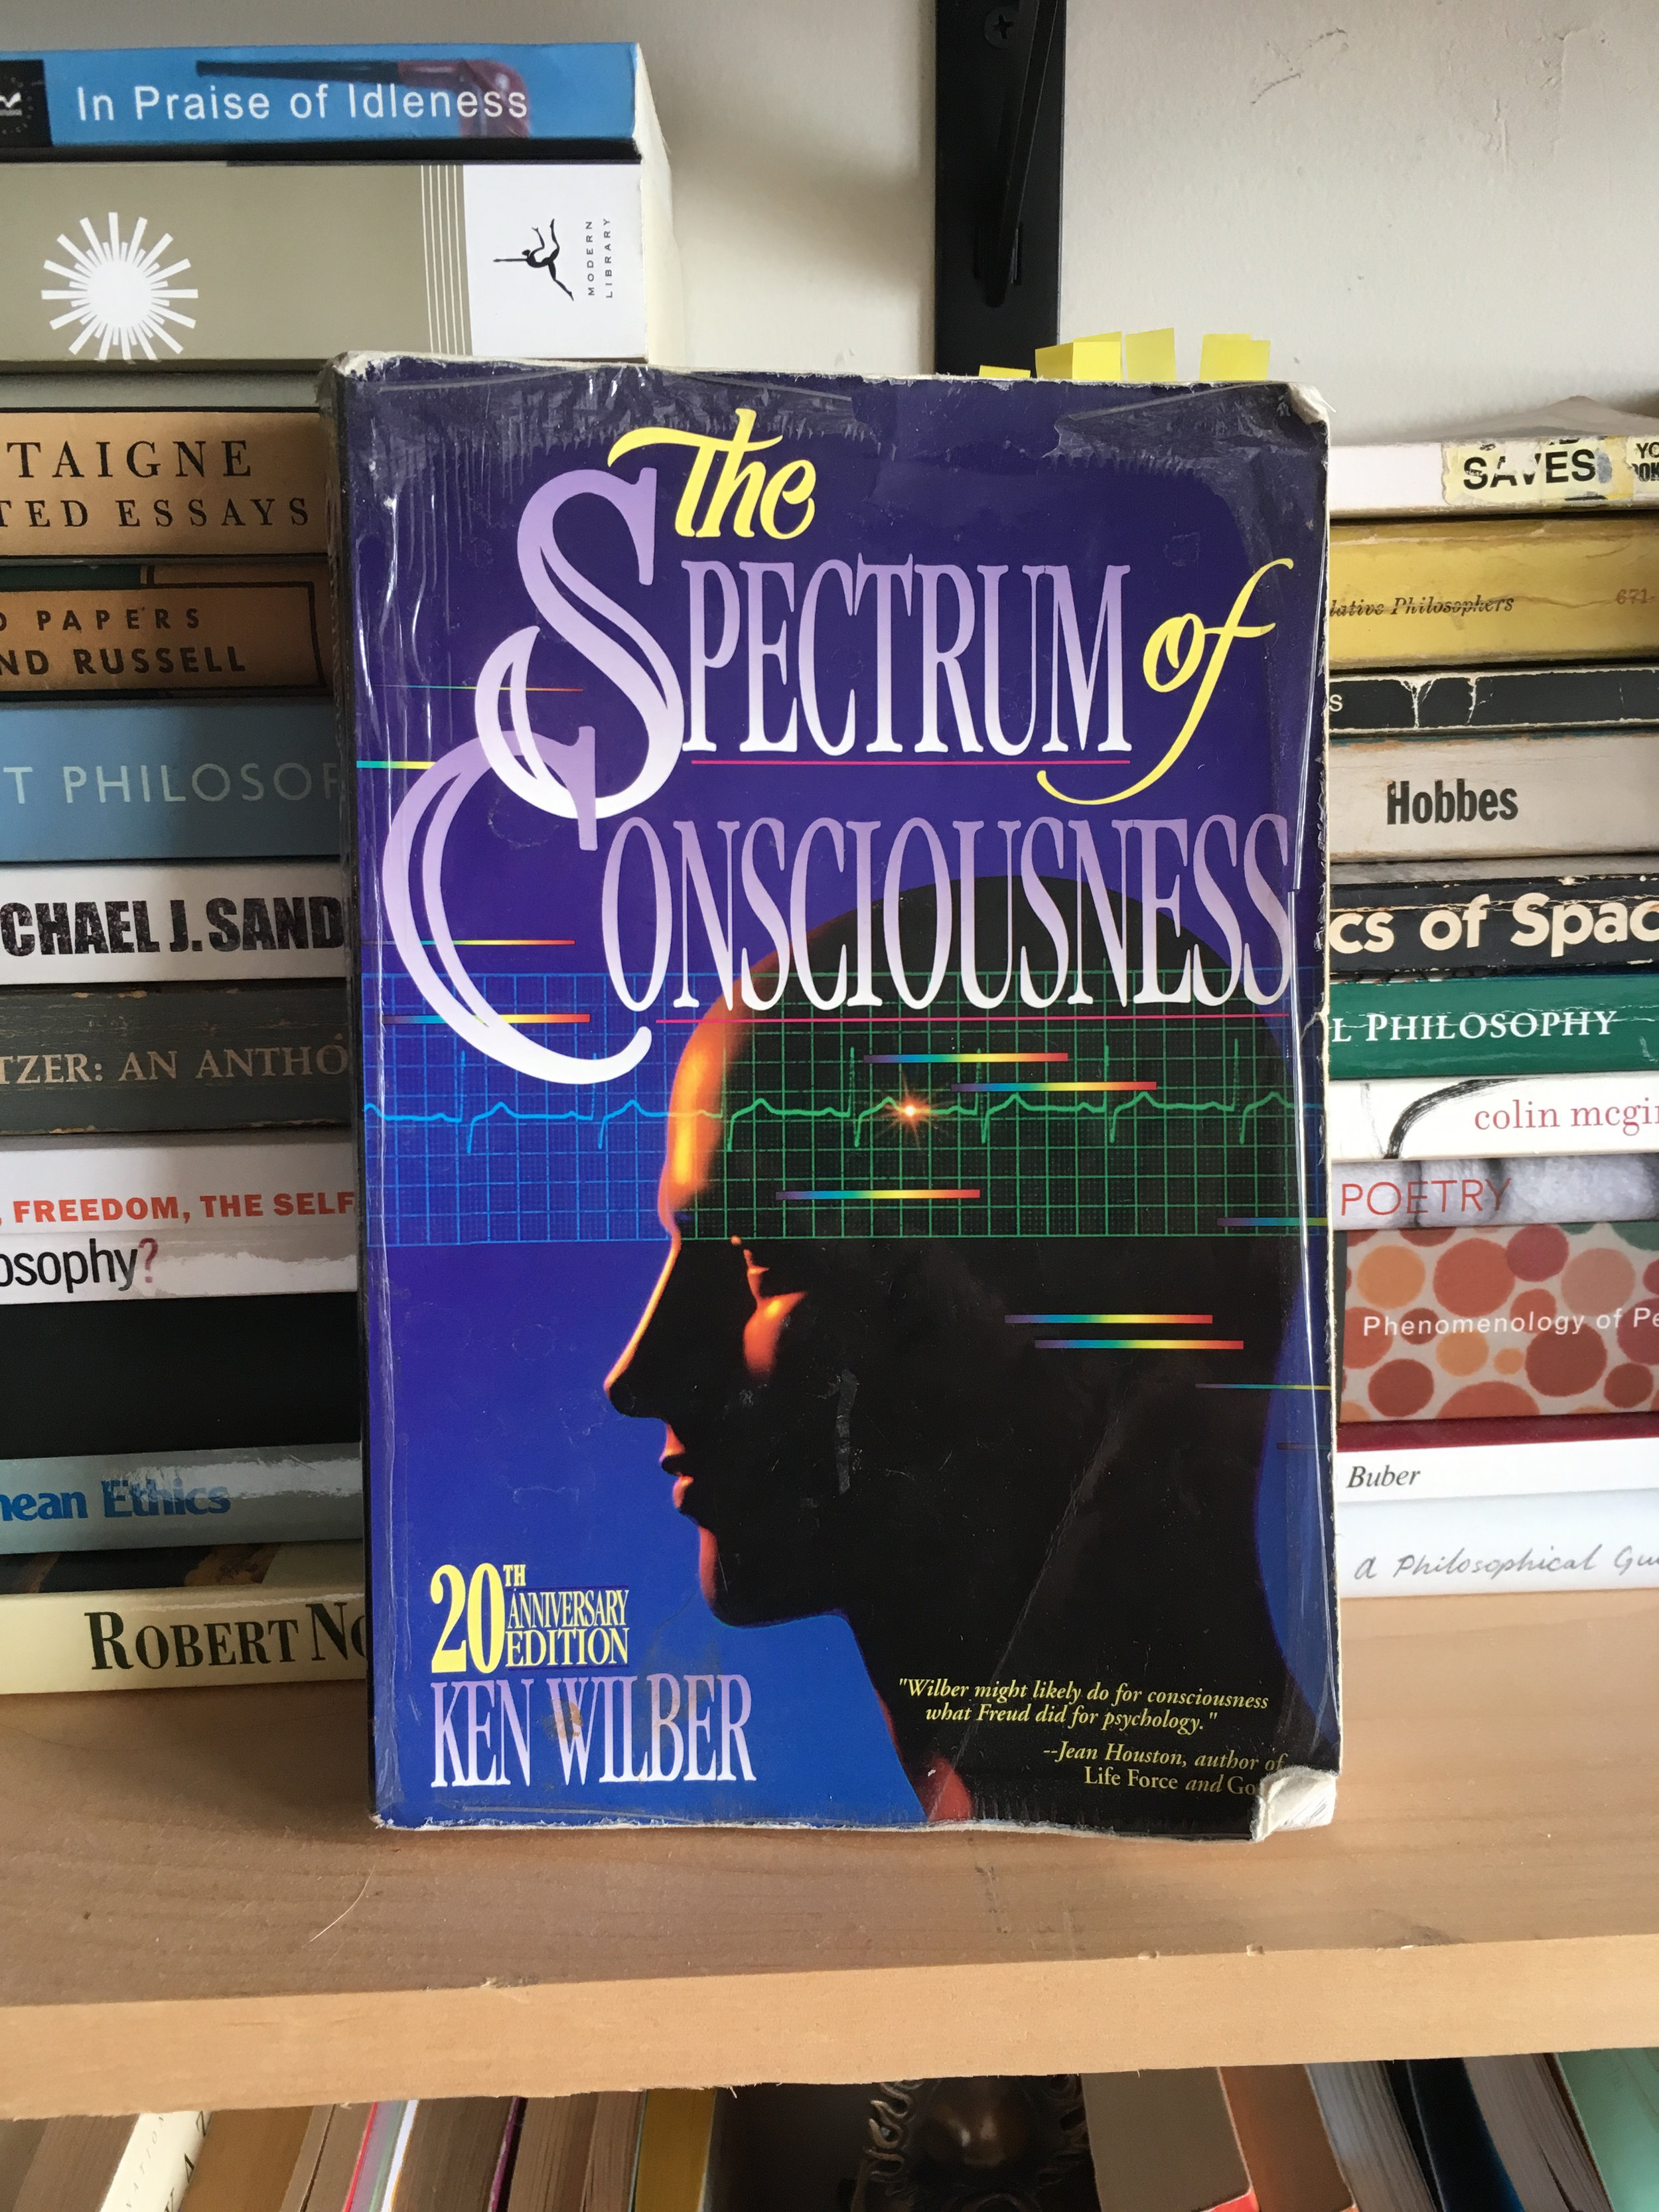 The Spectrum of Consciousness - Ken Wilber